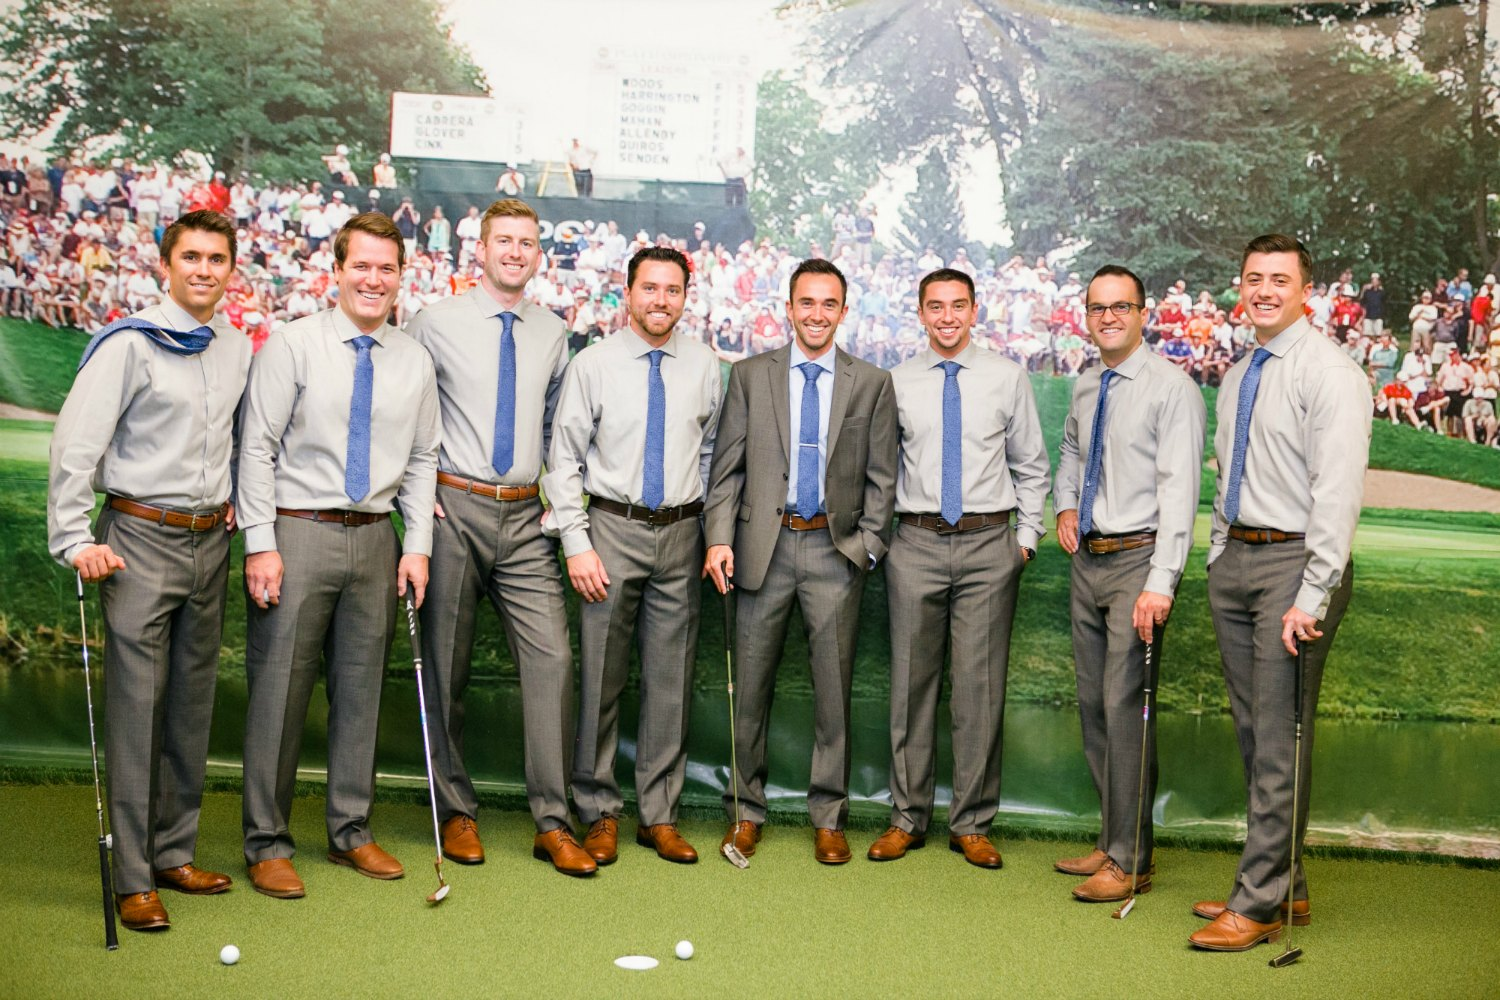 Groomsmen in Learning Center before the wedding reception at Hazeltine National Golf Club